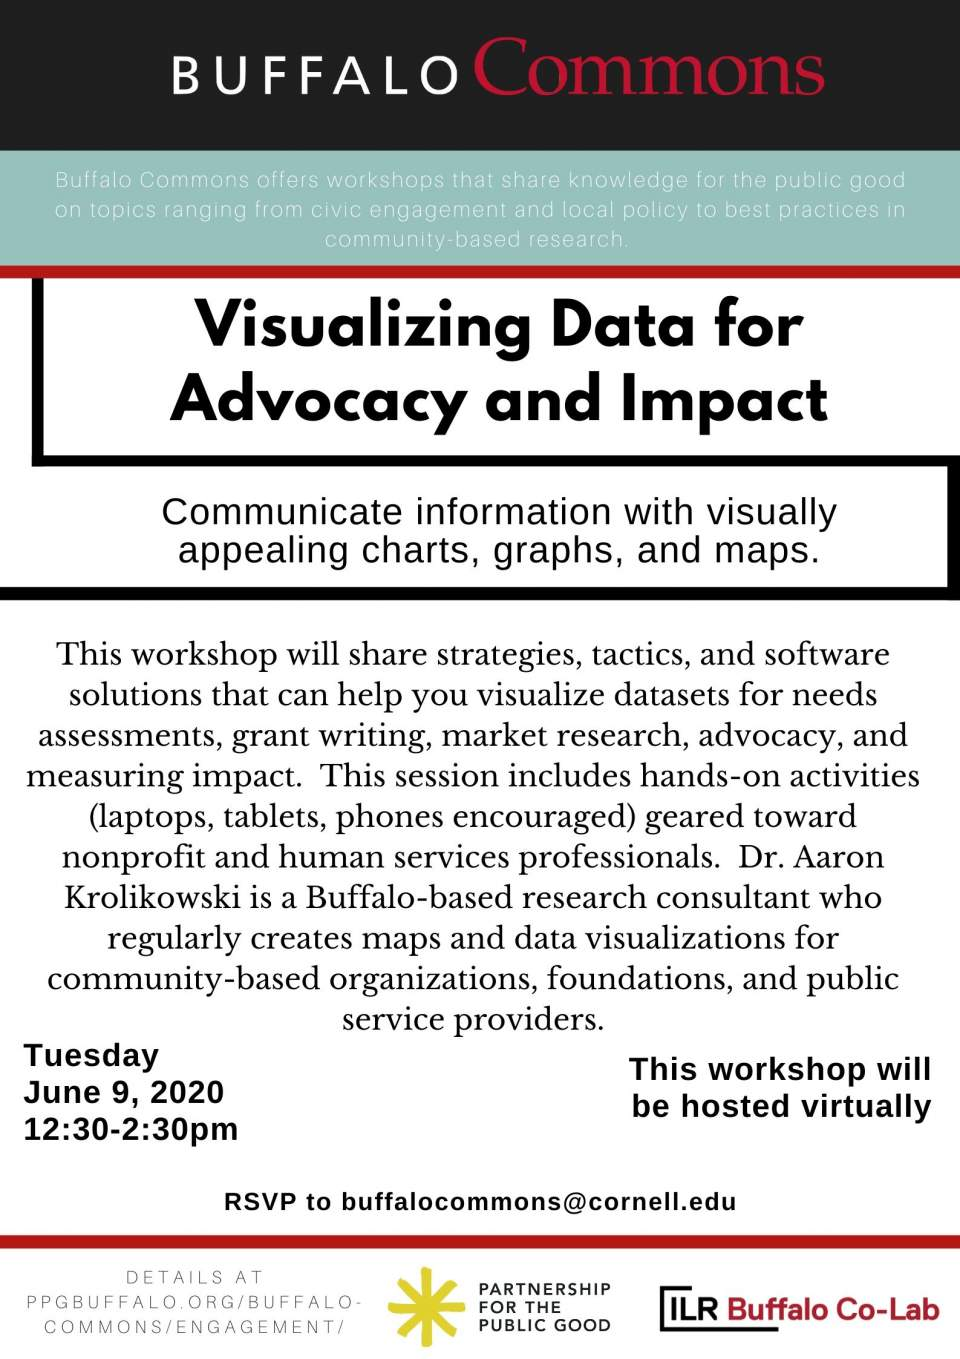 Buffalo Commons Virtual Workshop: Visualizing Data for Advocacy and Impact